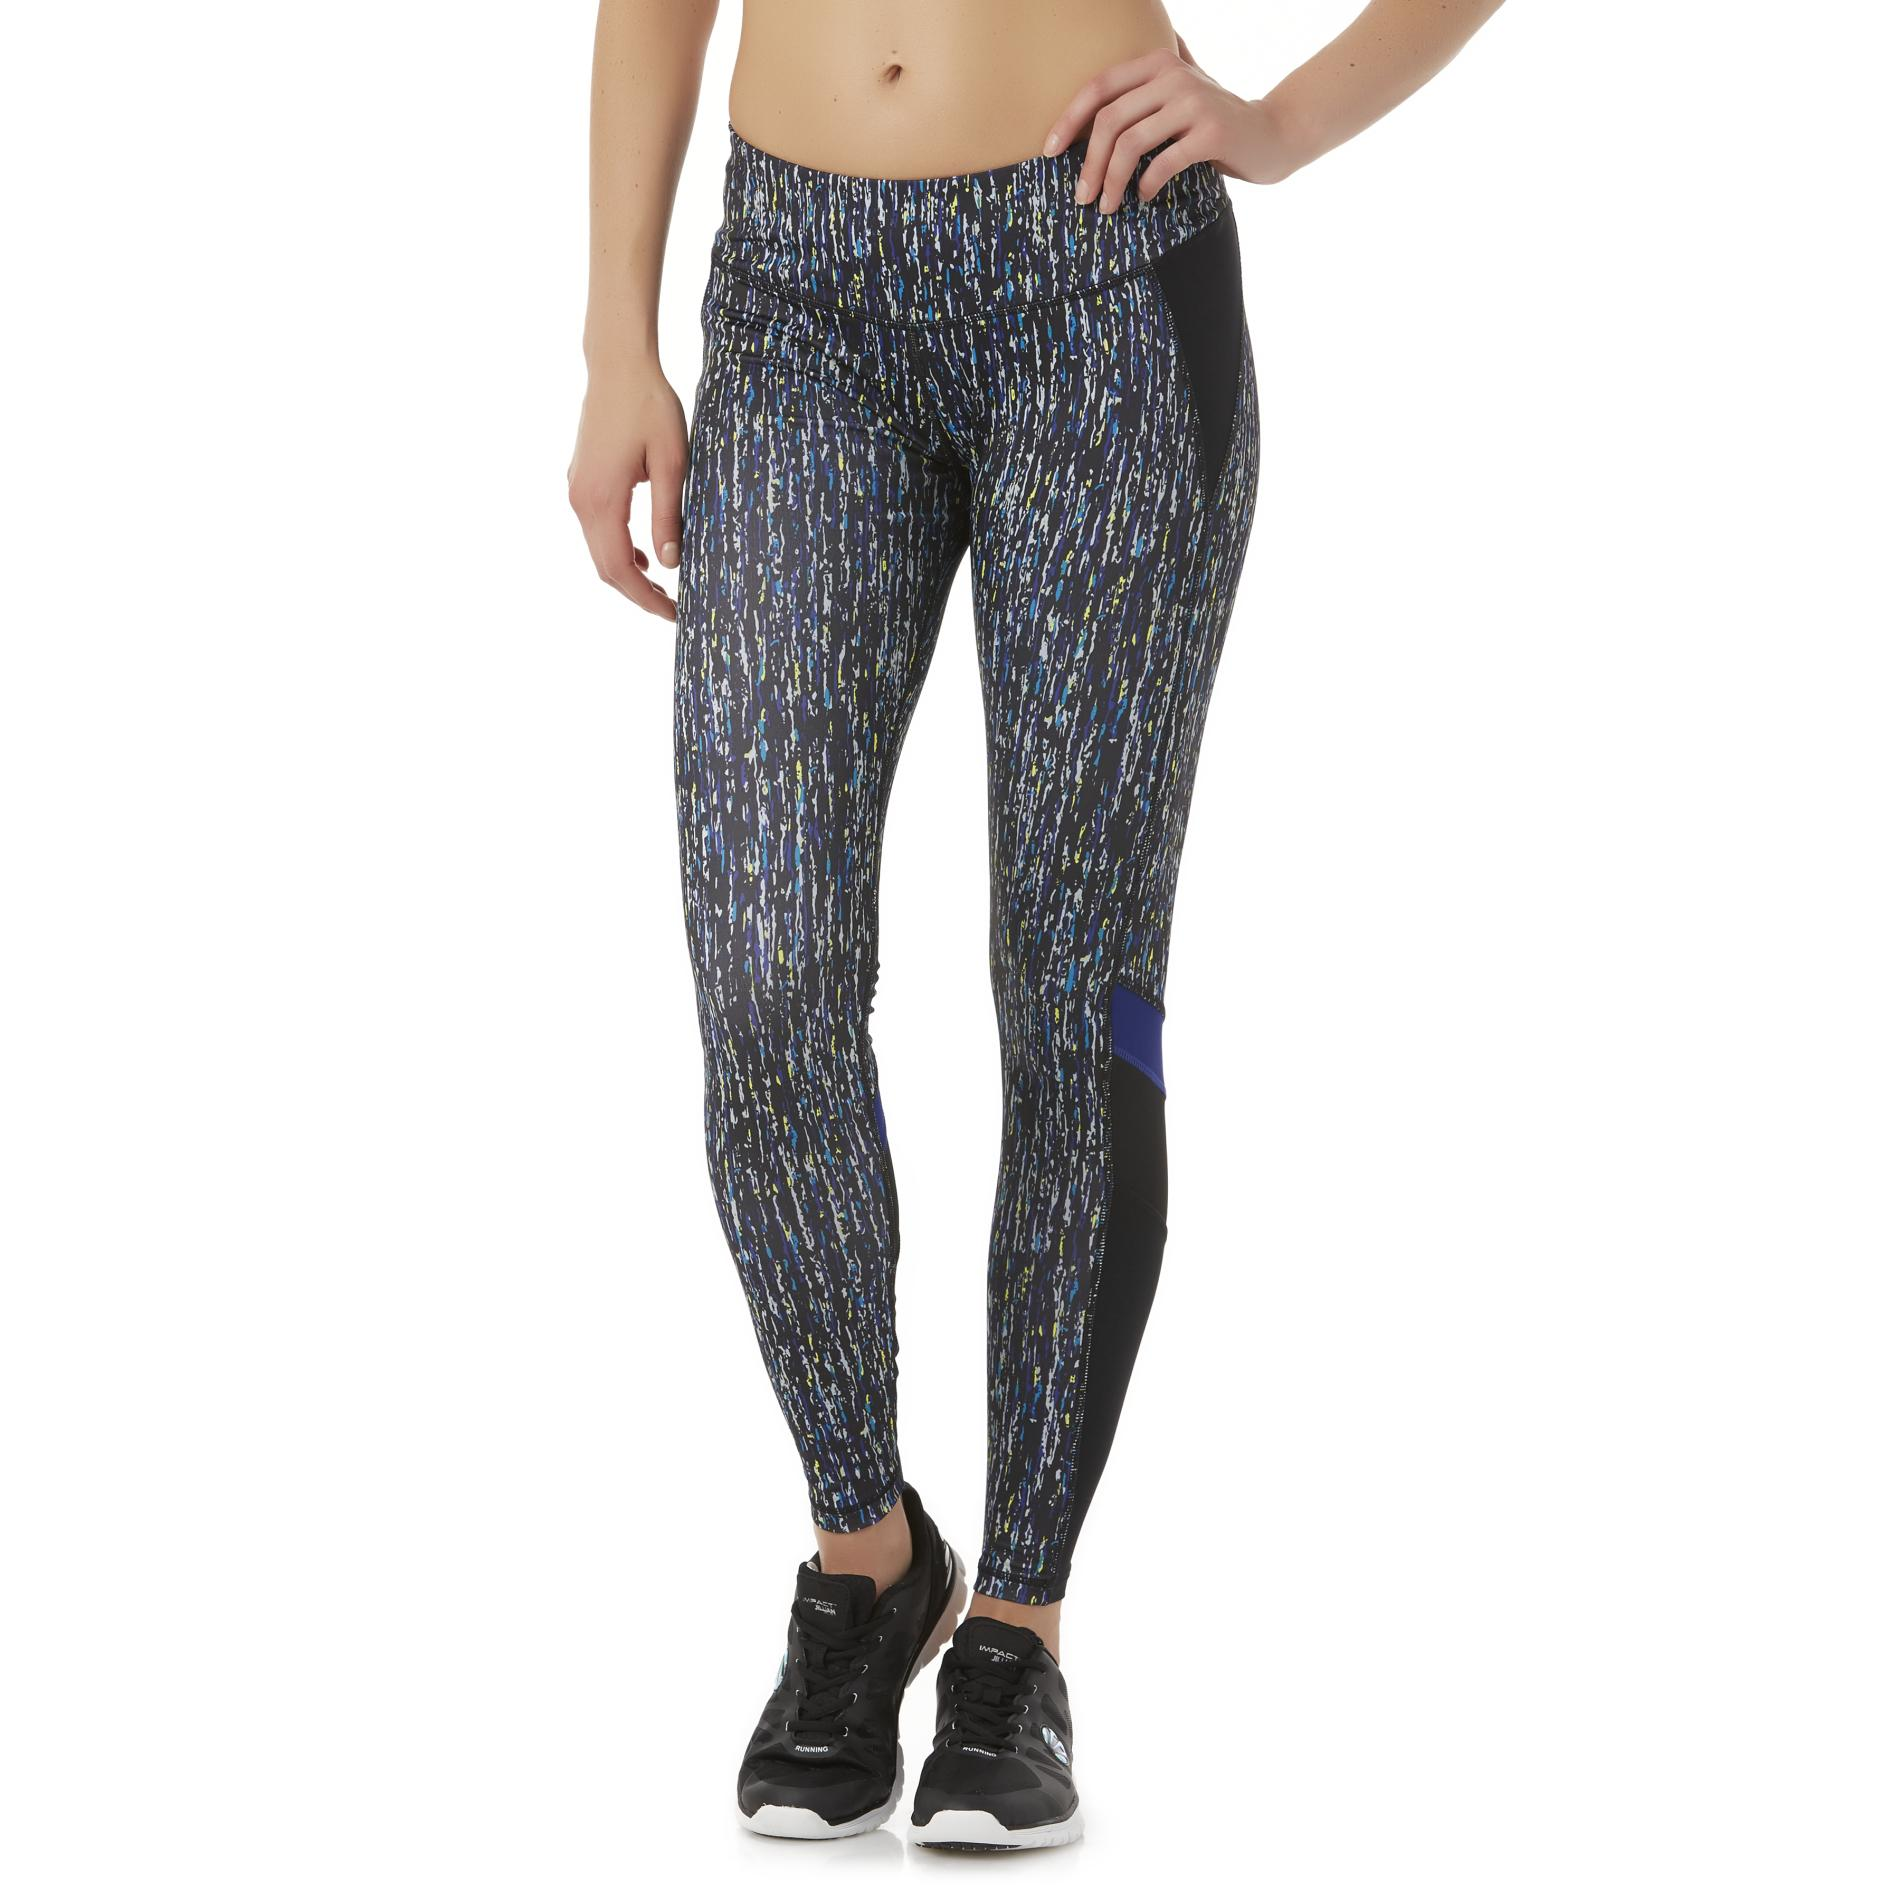 Impact by Jillian Michaels Women's Sprint Athletic Leggings - Abstract